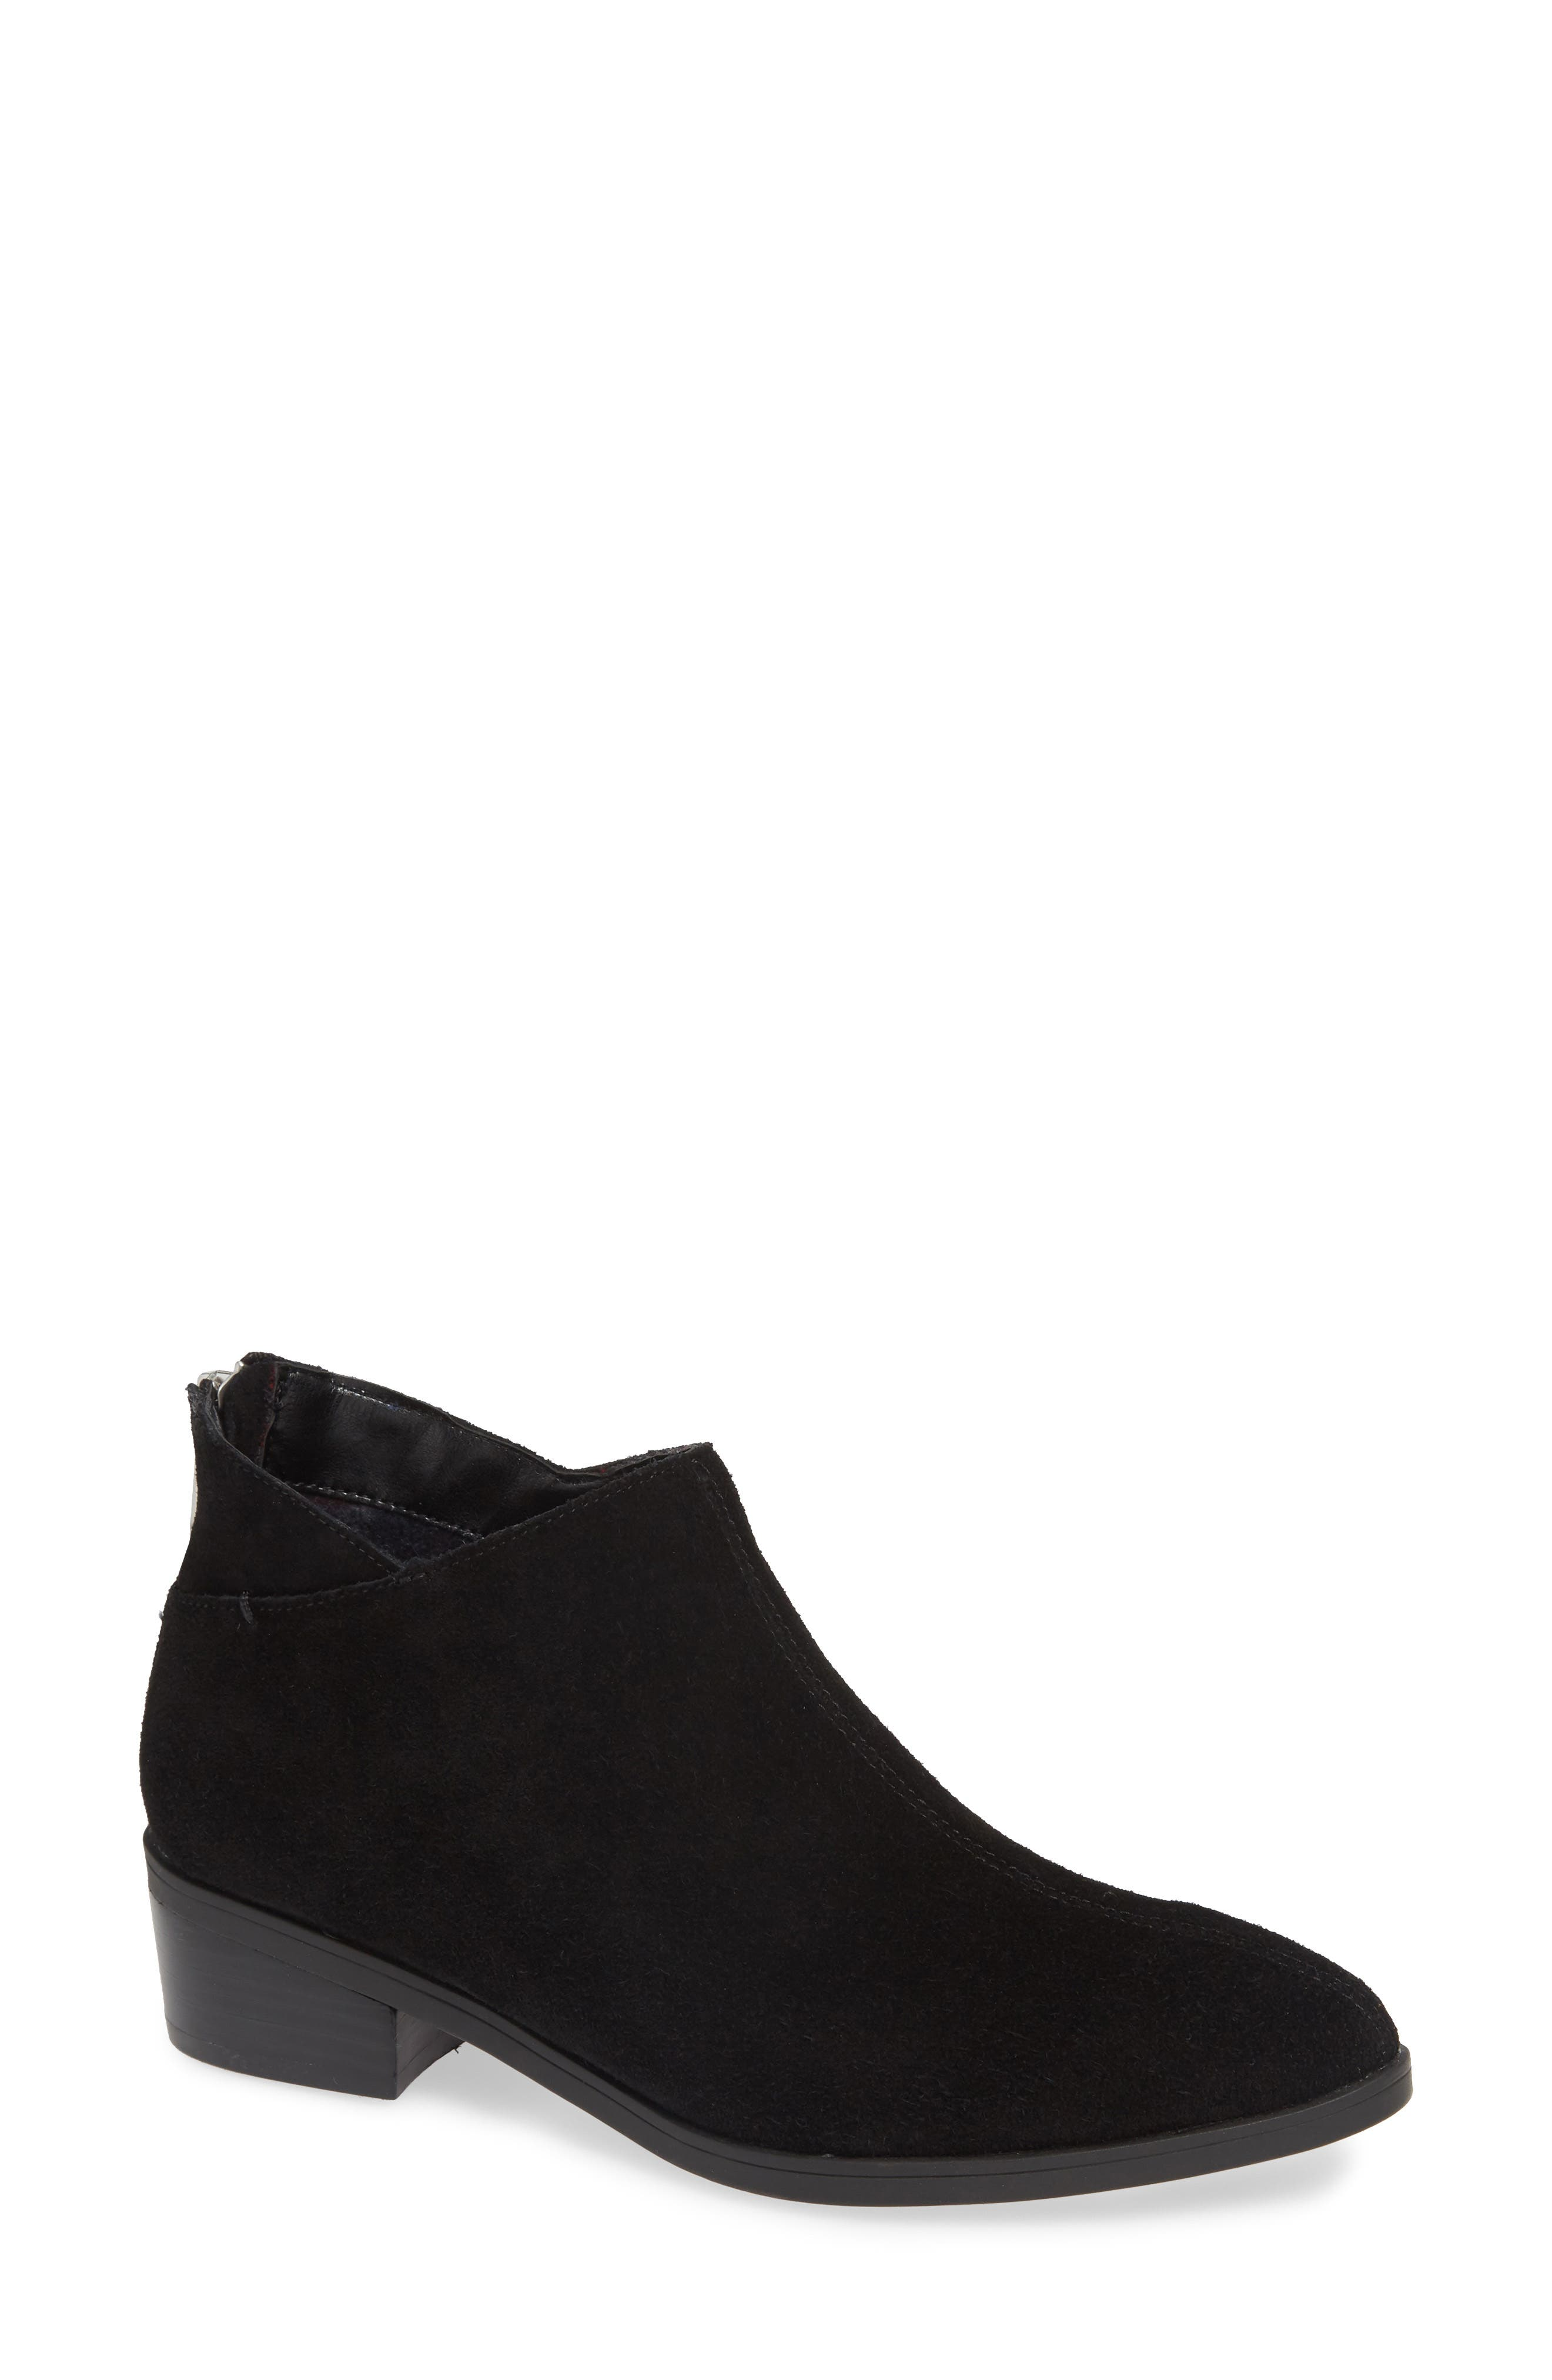 Bella Vita Haven Ankle Bootie, Black